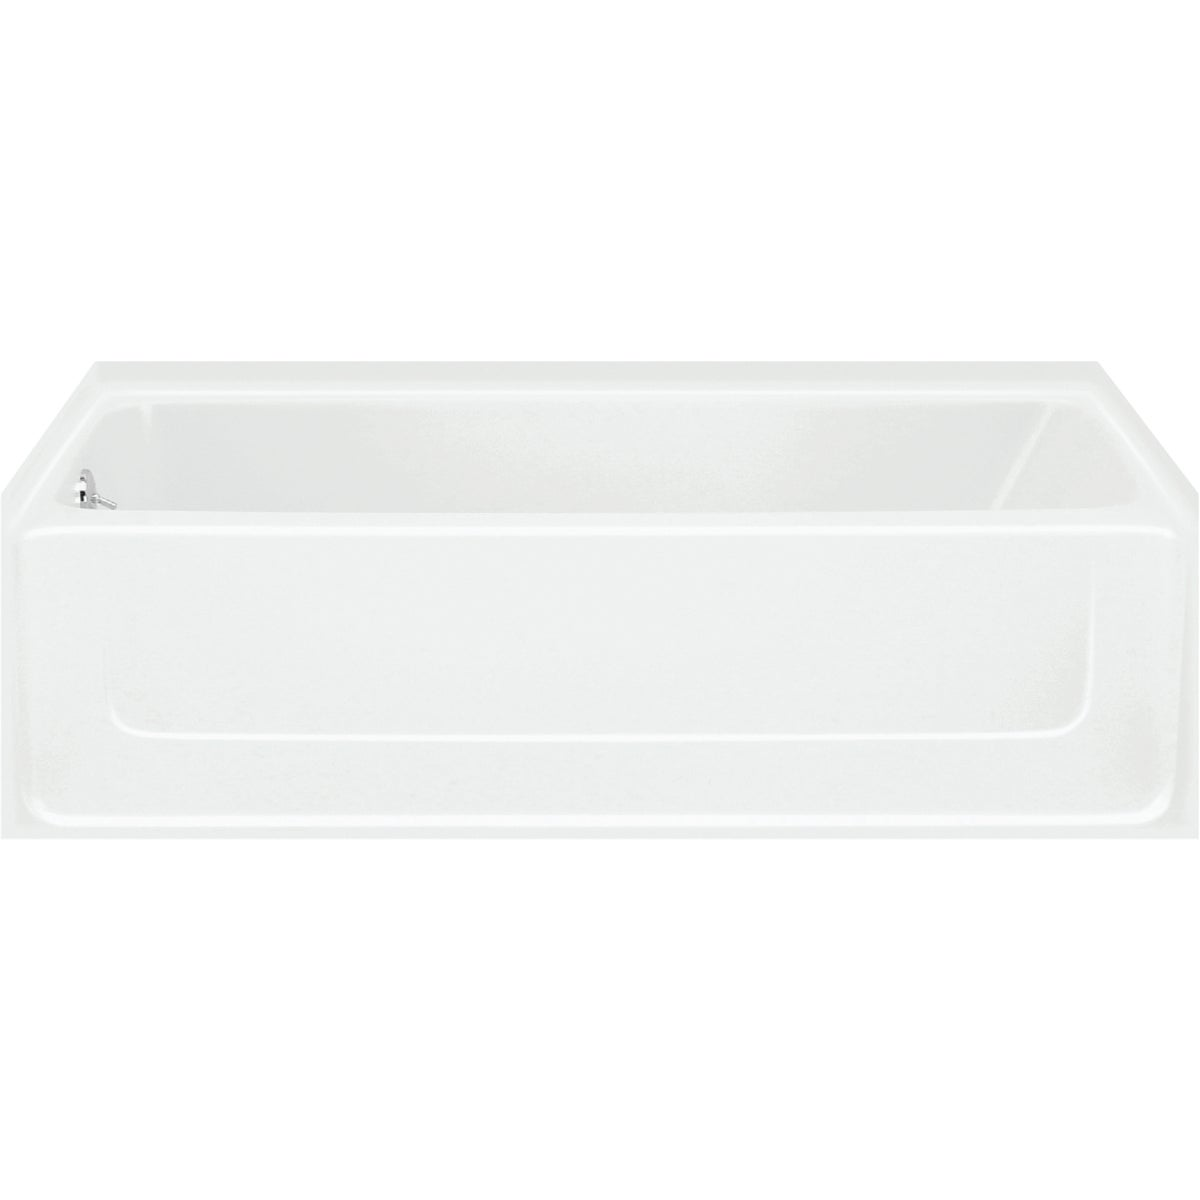 5 PACK WHITE RH TUB - 61041520-0 by Sterling Pbg/vikrell